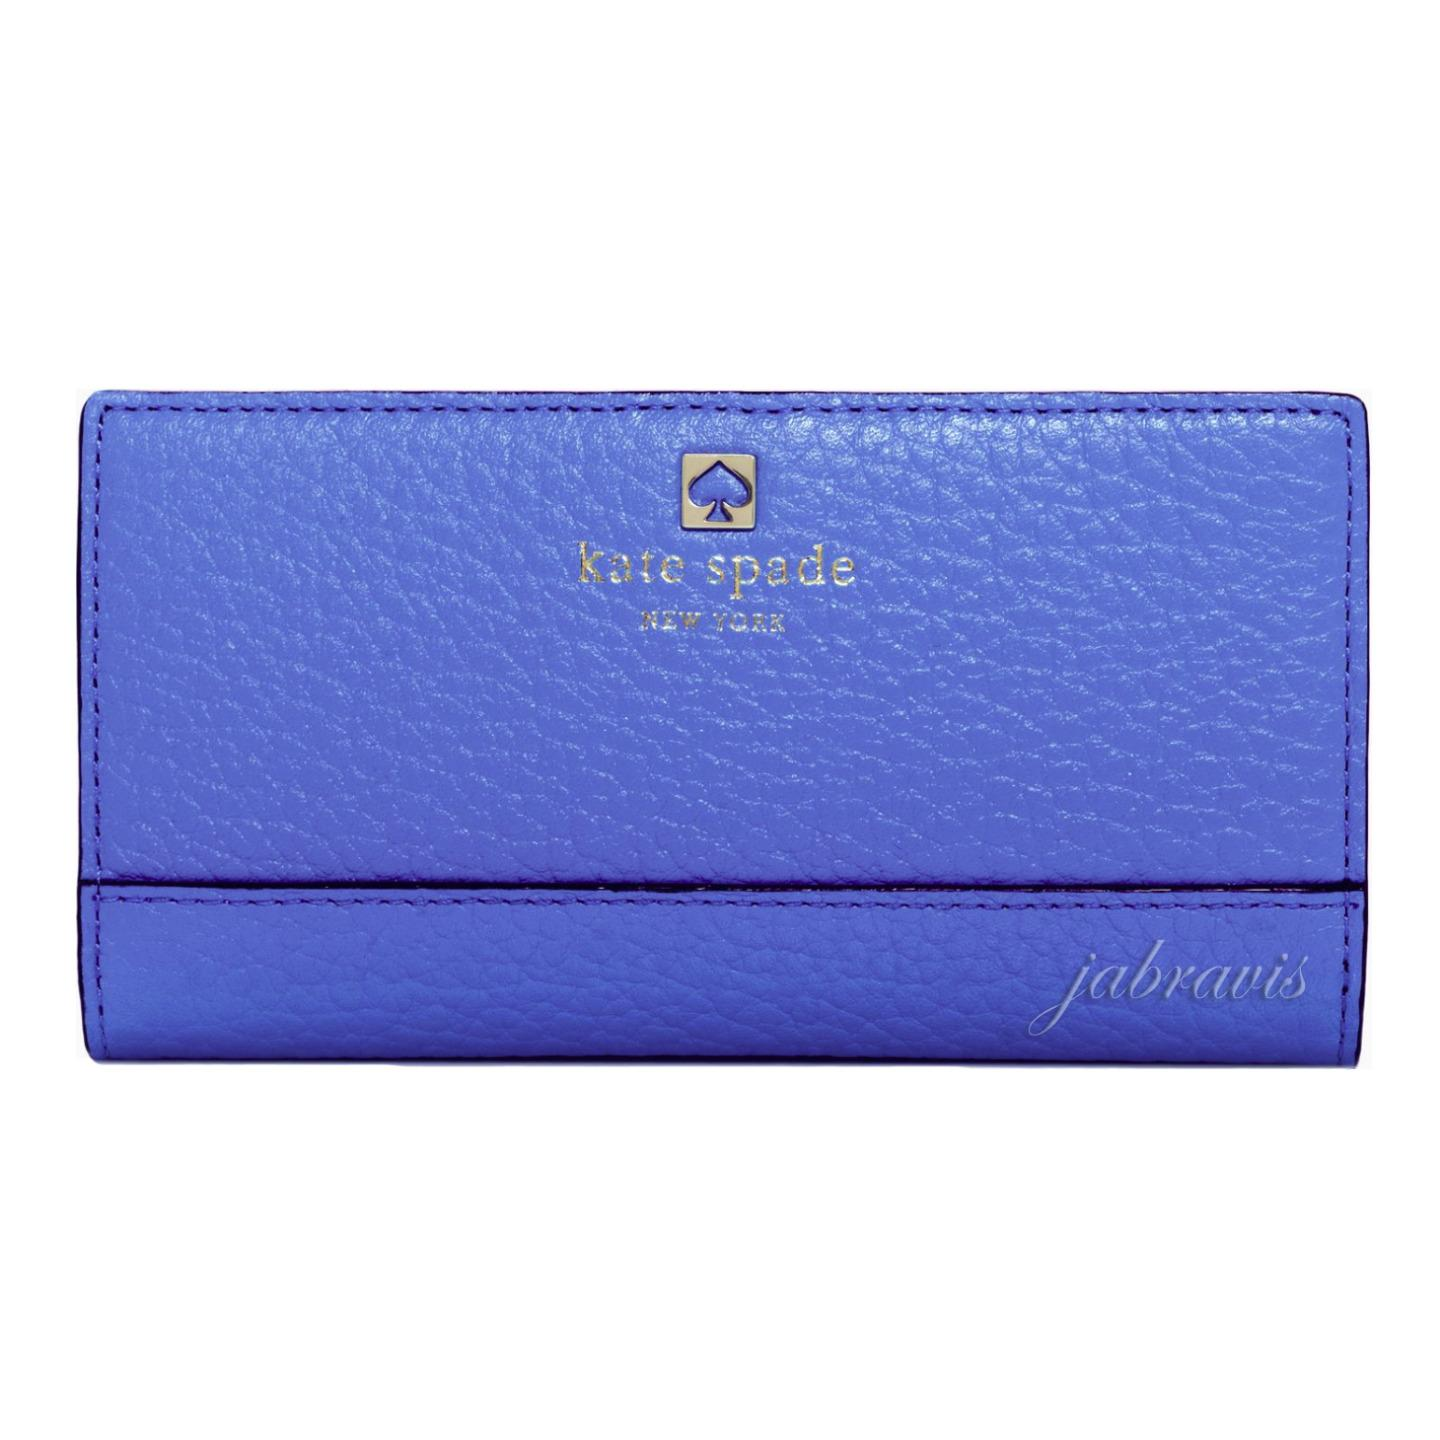 Kate Spade Bluebelle Blue Leather Southport Avenue Stacy